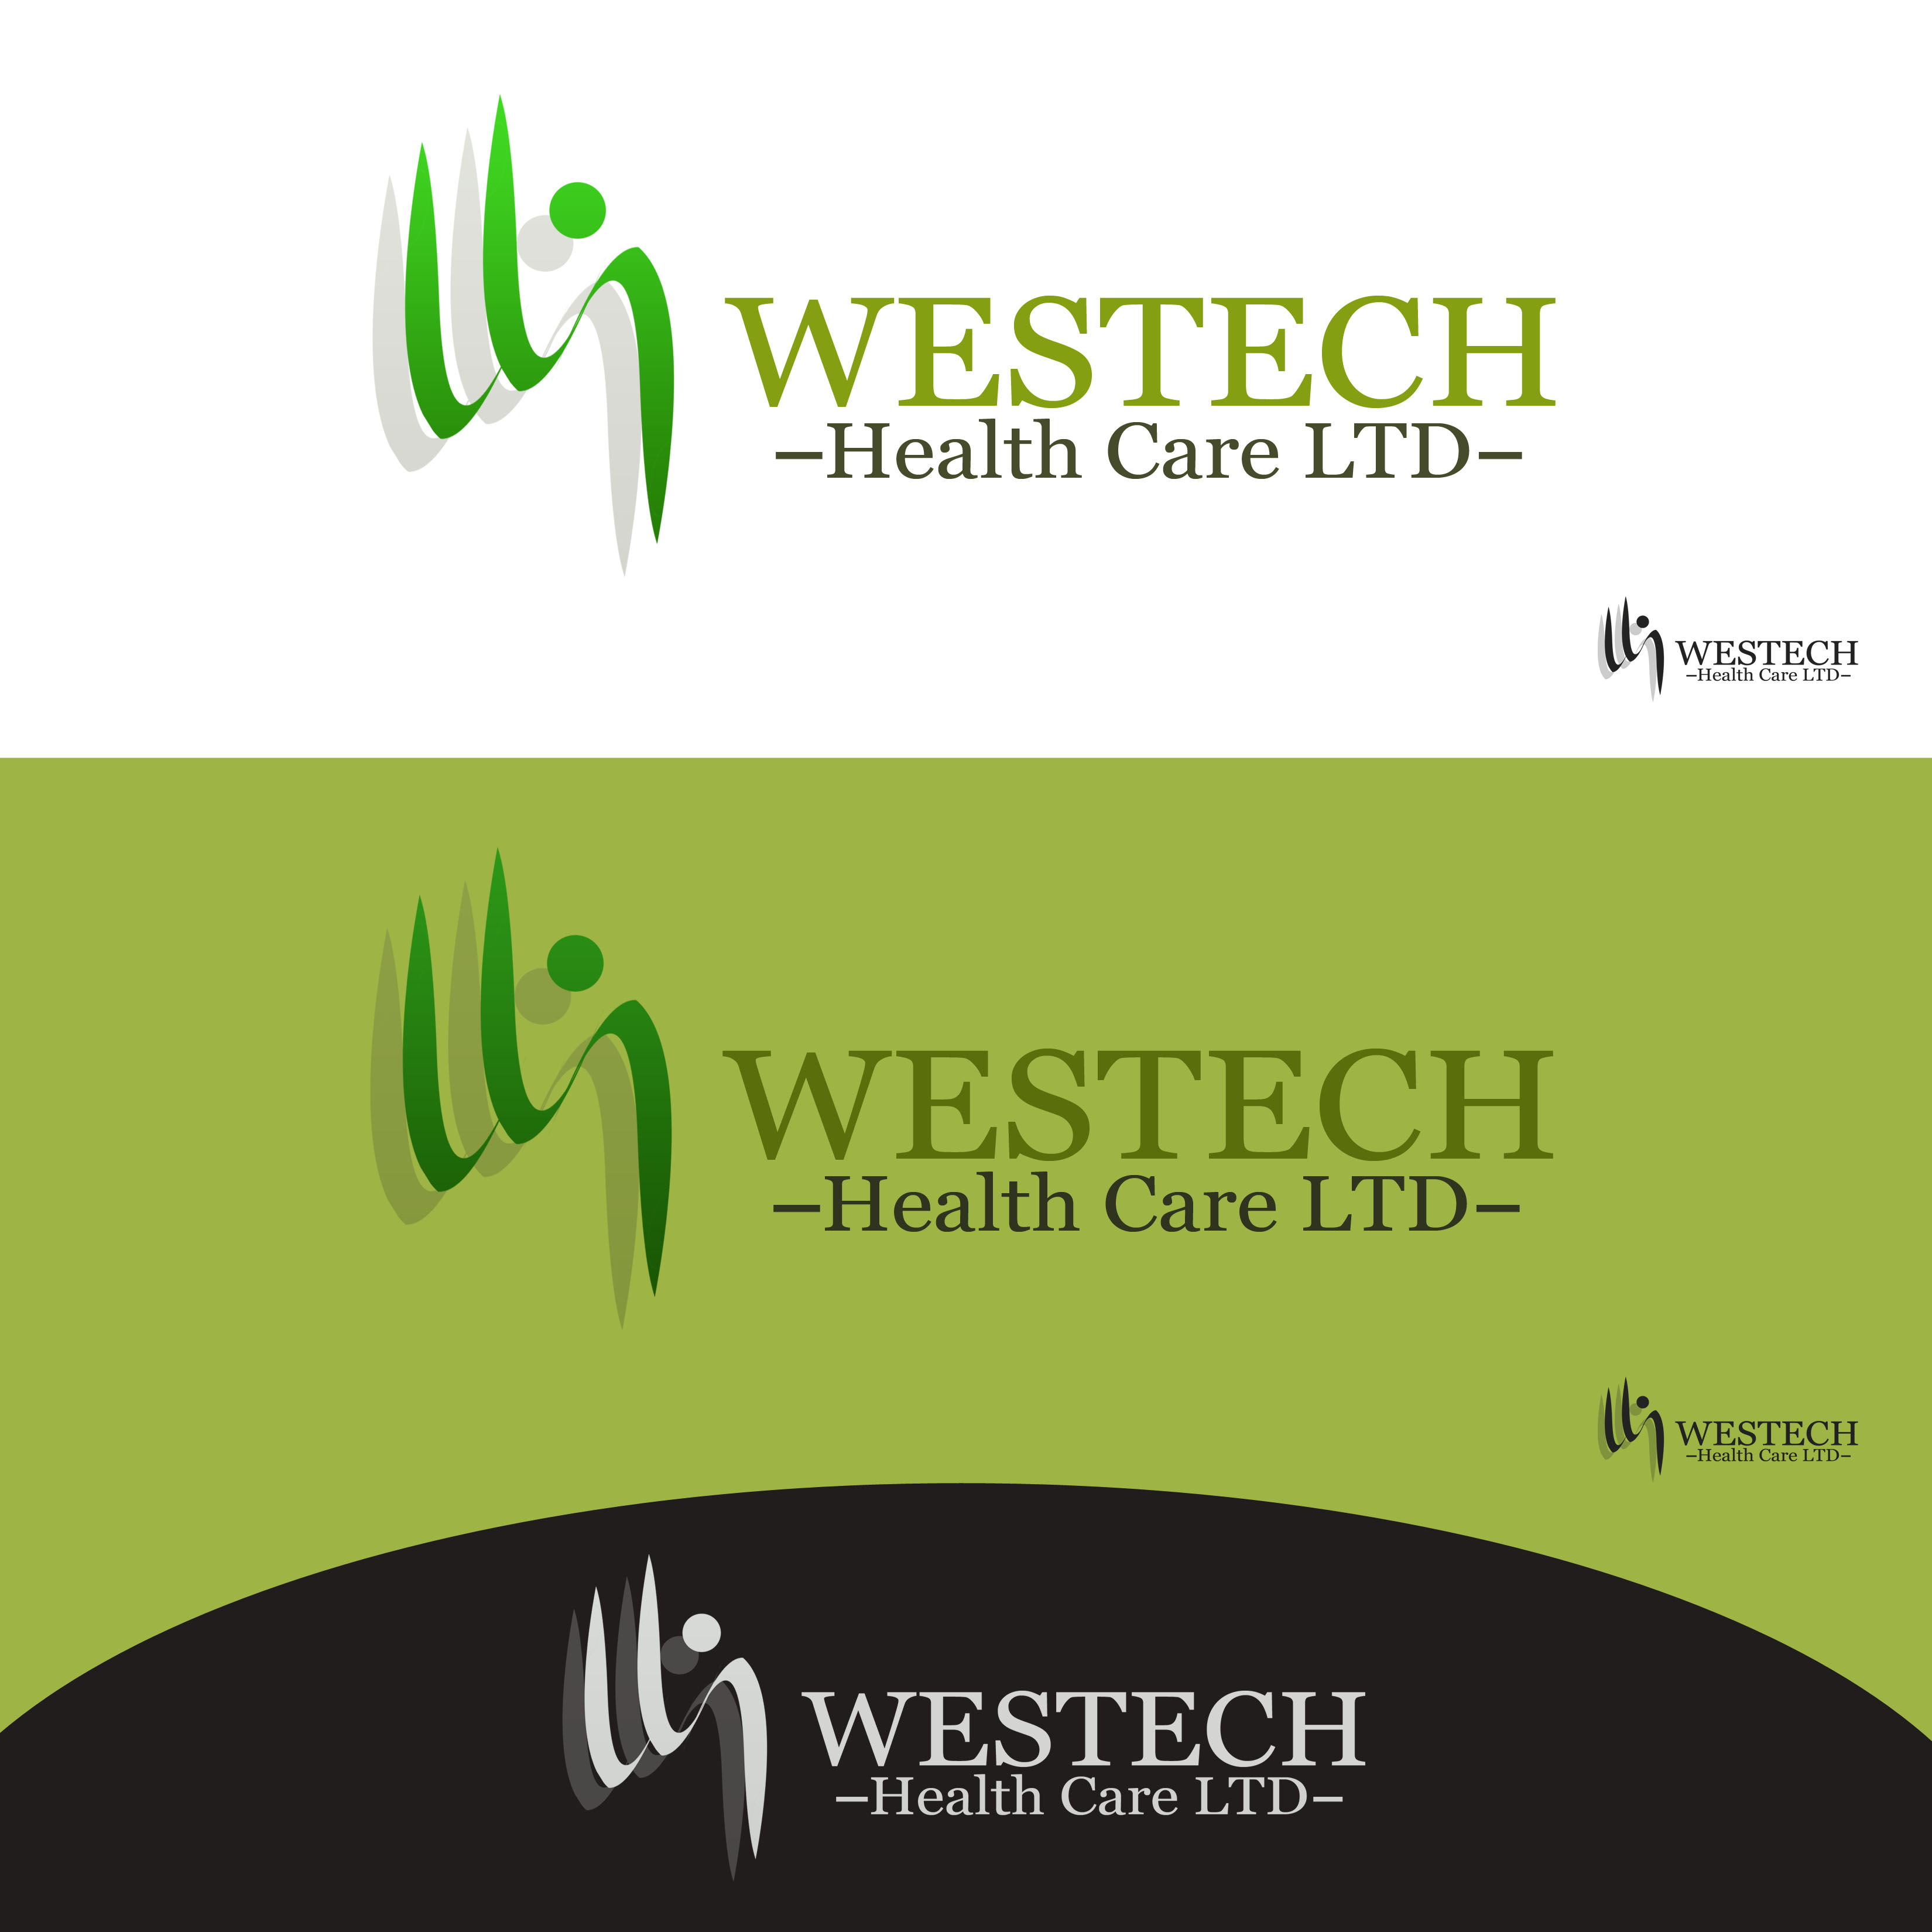 Logo Design by Allan Esclamado - Entry No. 4 in the Logo Design Contest Creative Logo Design for Westech Health Care Ltd..